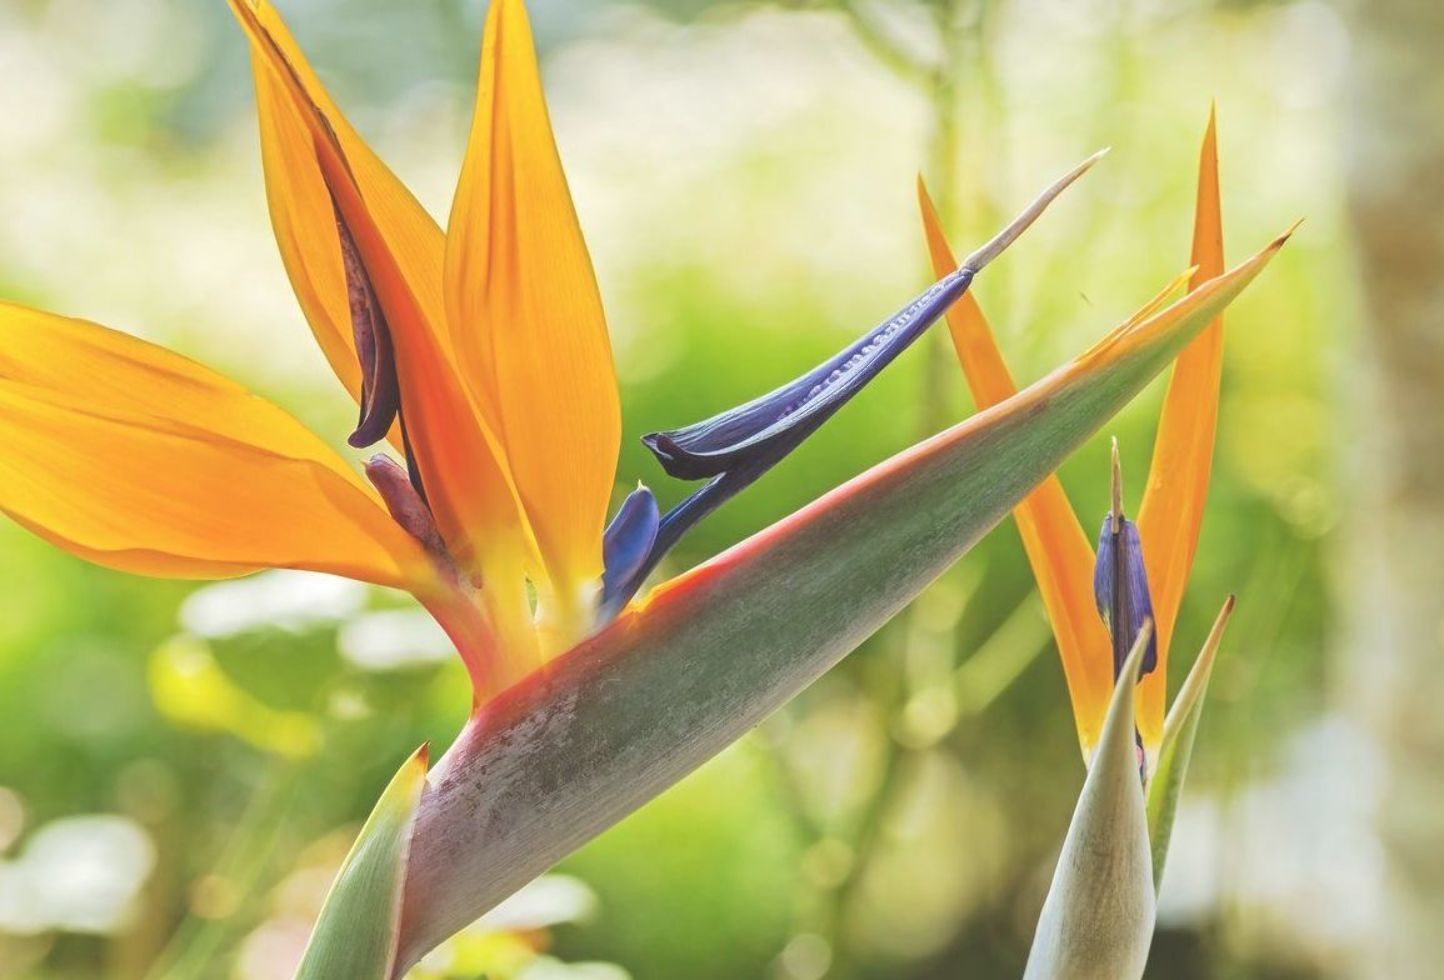 Strelitzia Bird Of Paradise Growing Conditions For Bird Of Paradise Flowers Aufbewahrung Sommer